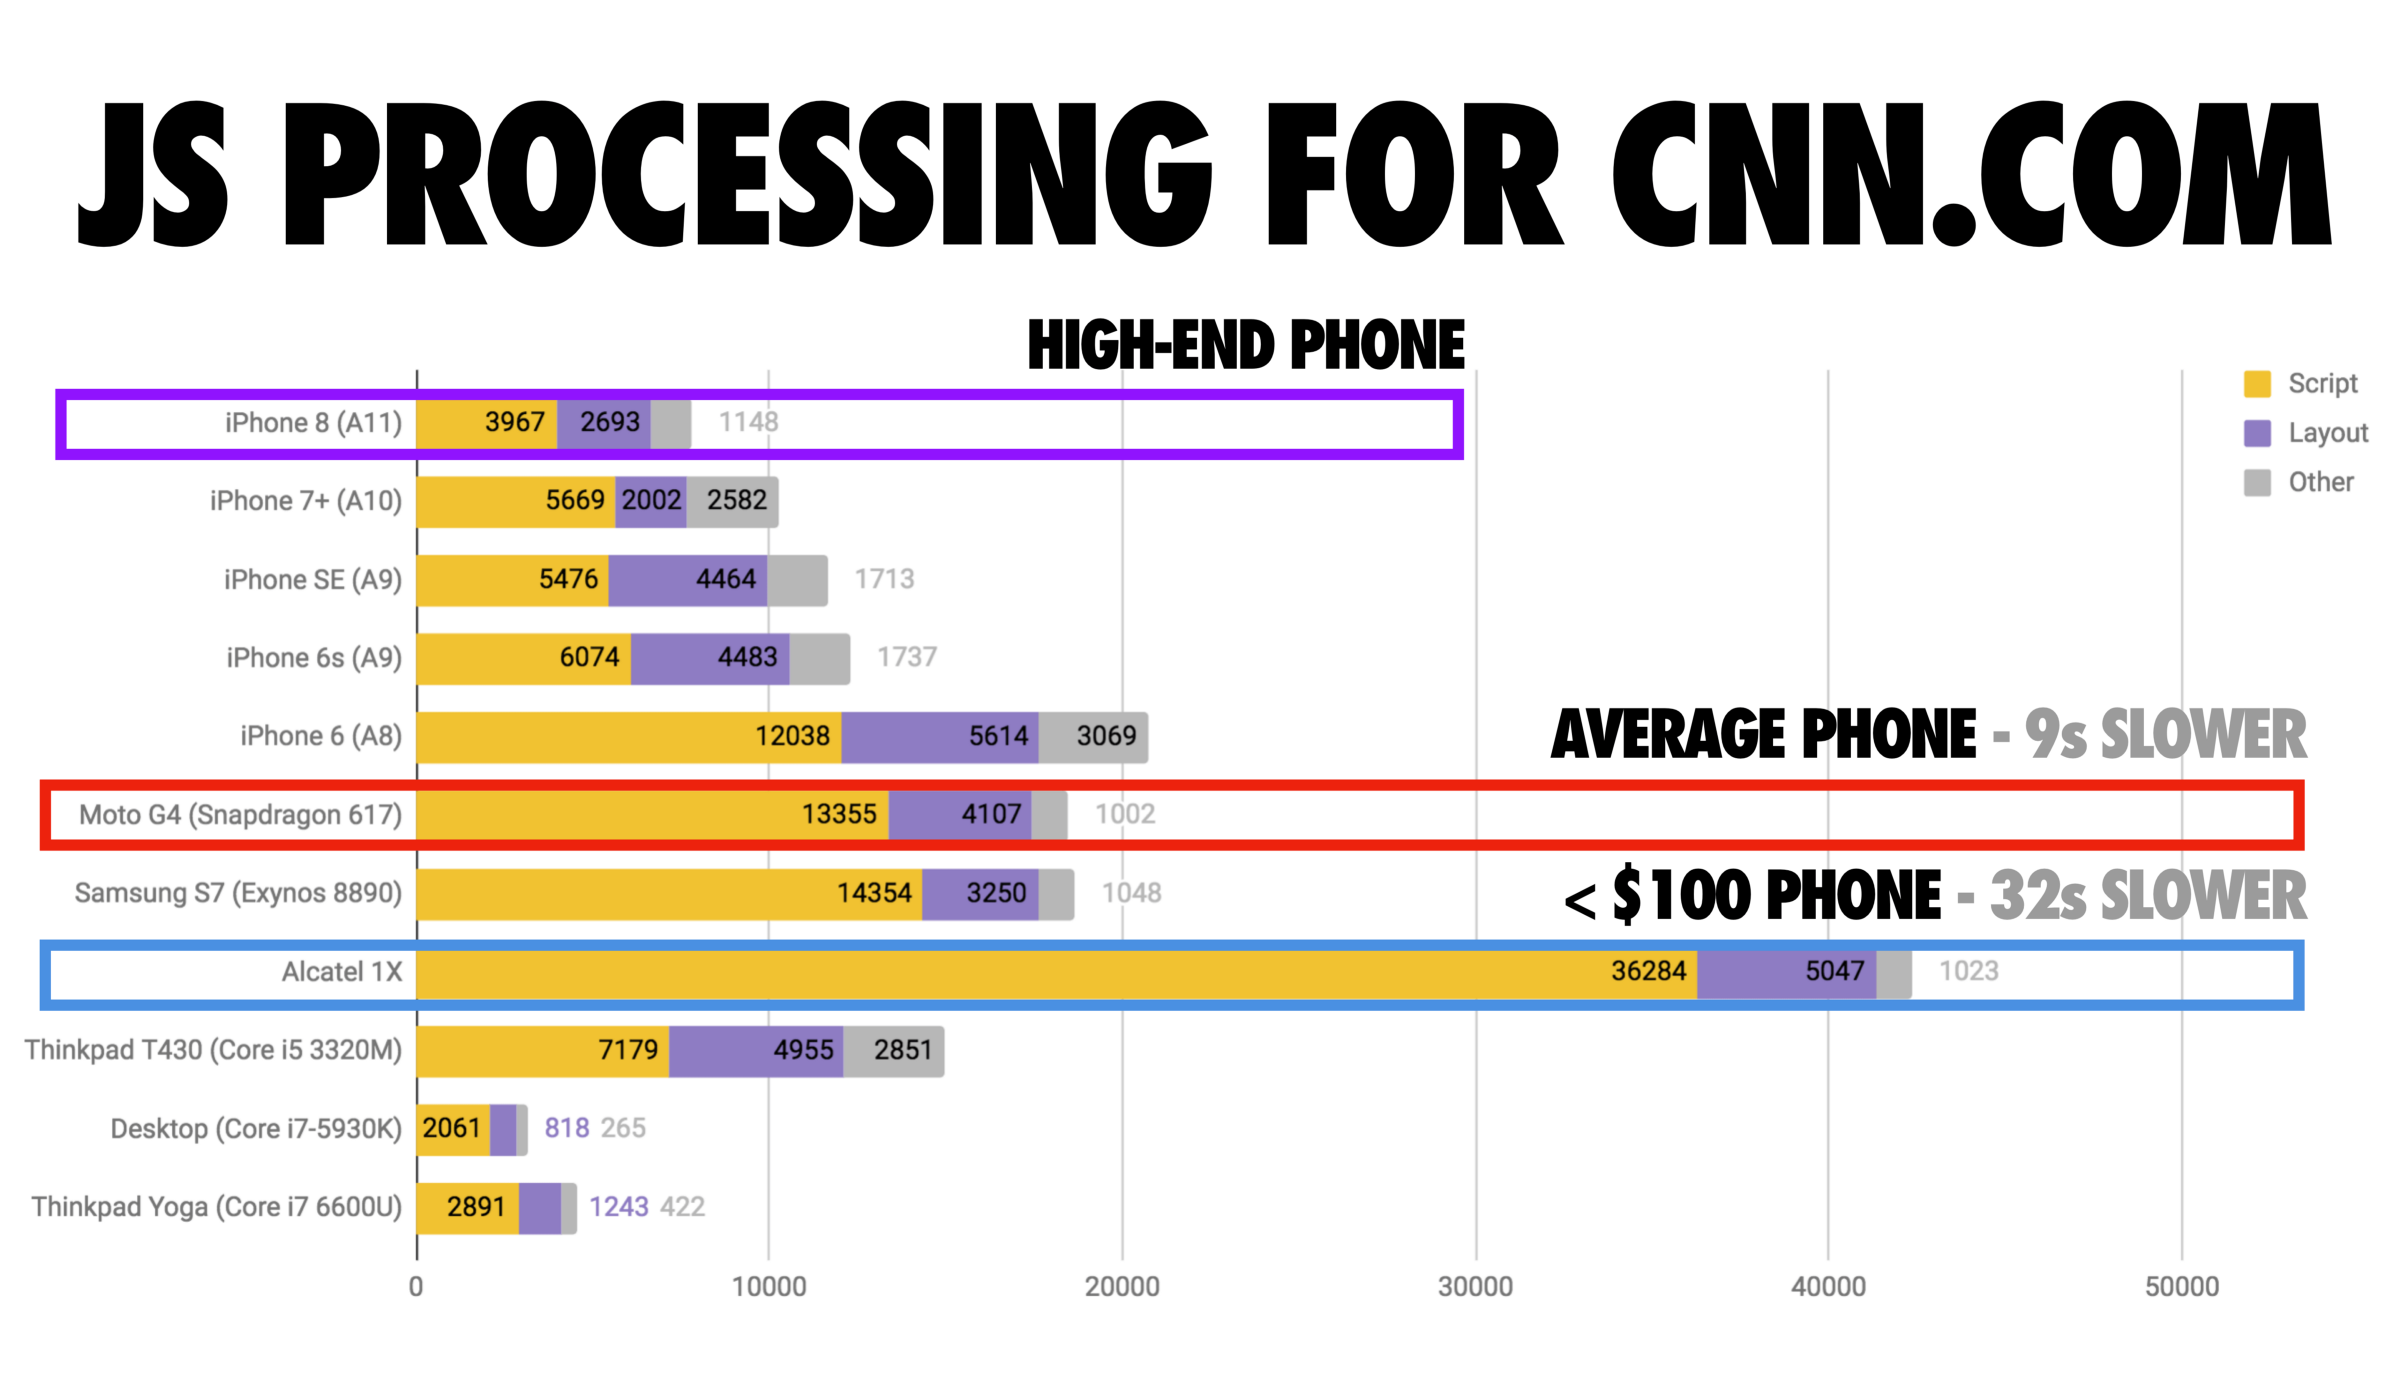 760d82bd9 JavaScript processing times for CNN.com as measured by WebPageTest (src). A  high-end phone (iPhone 8) processes script in ~4s.